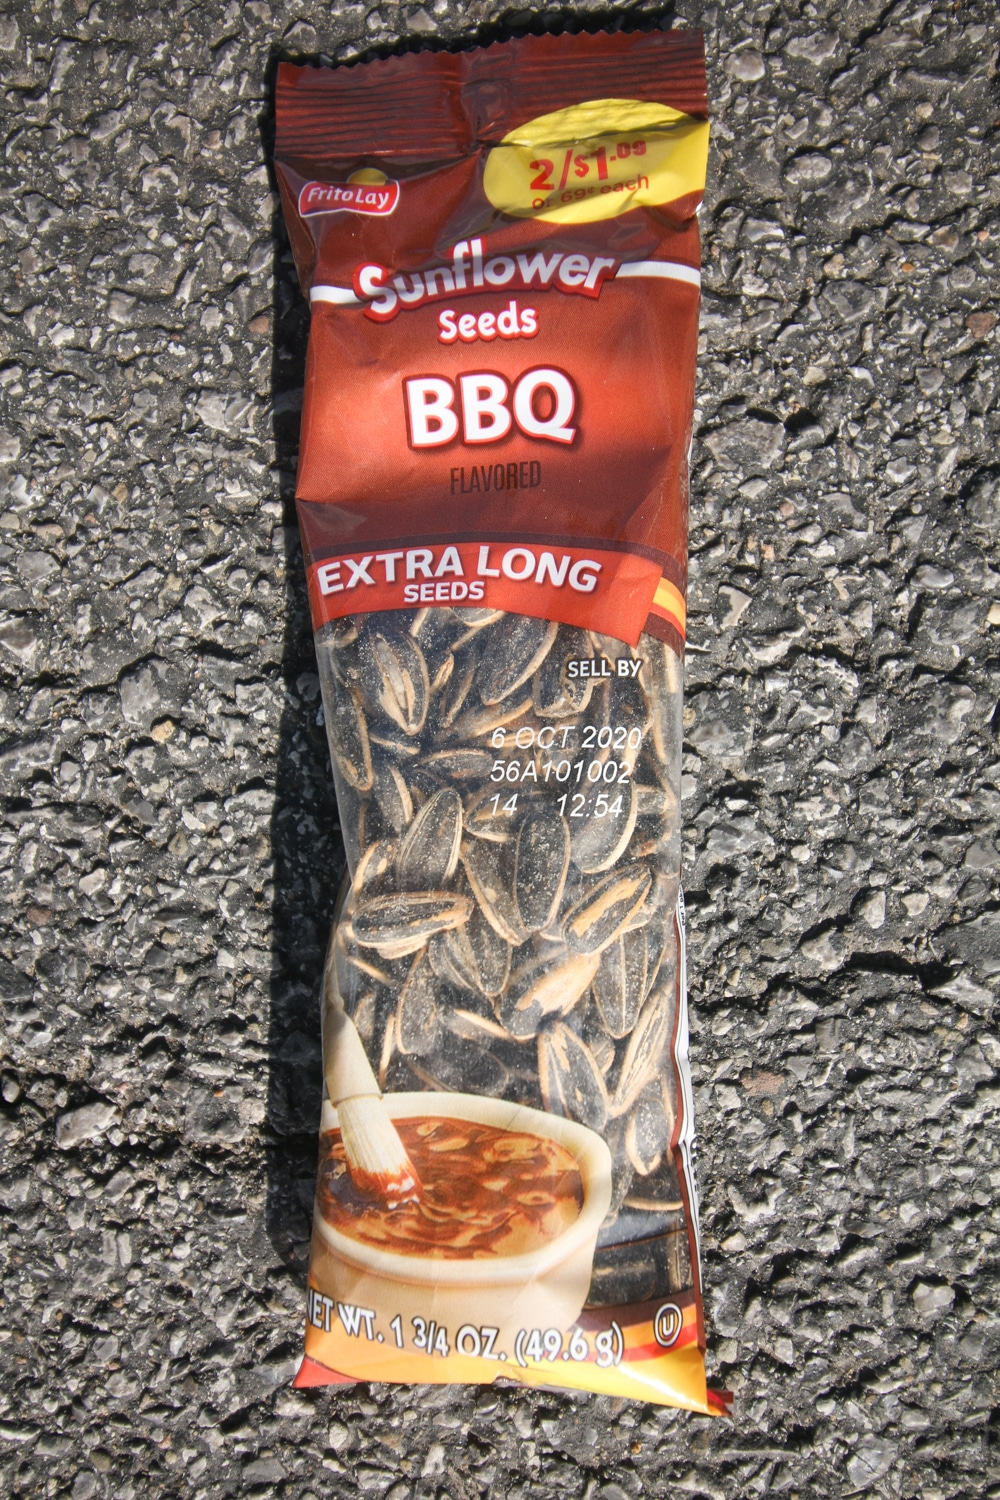 A package of bbq sunflower seeds.